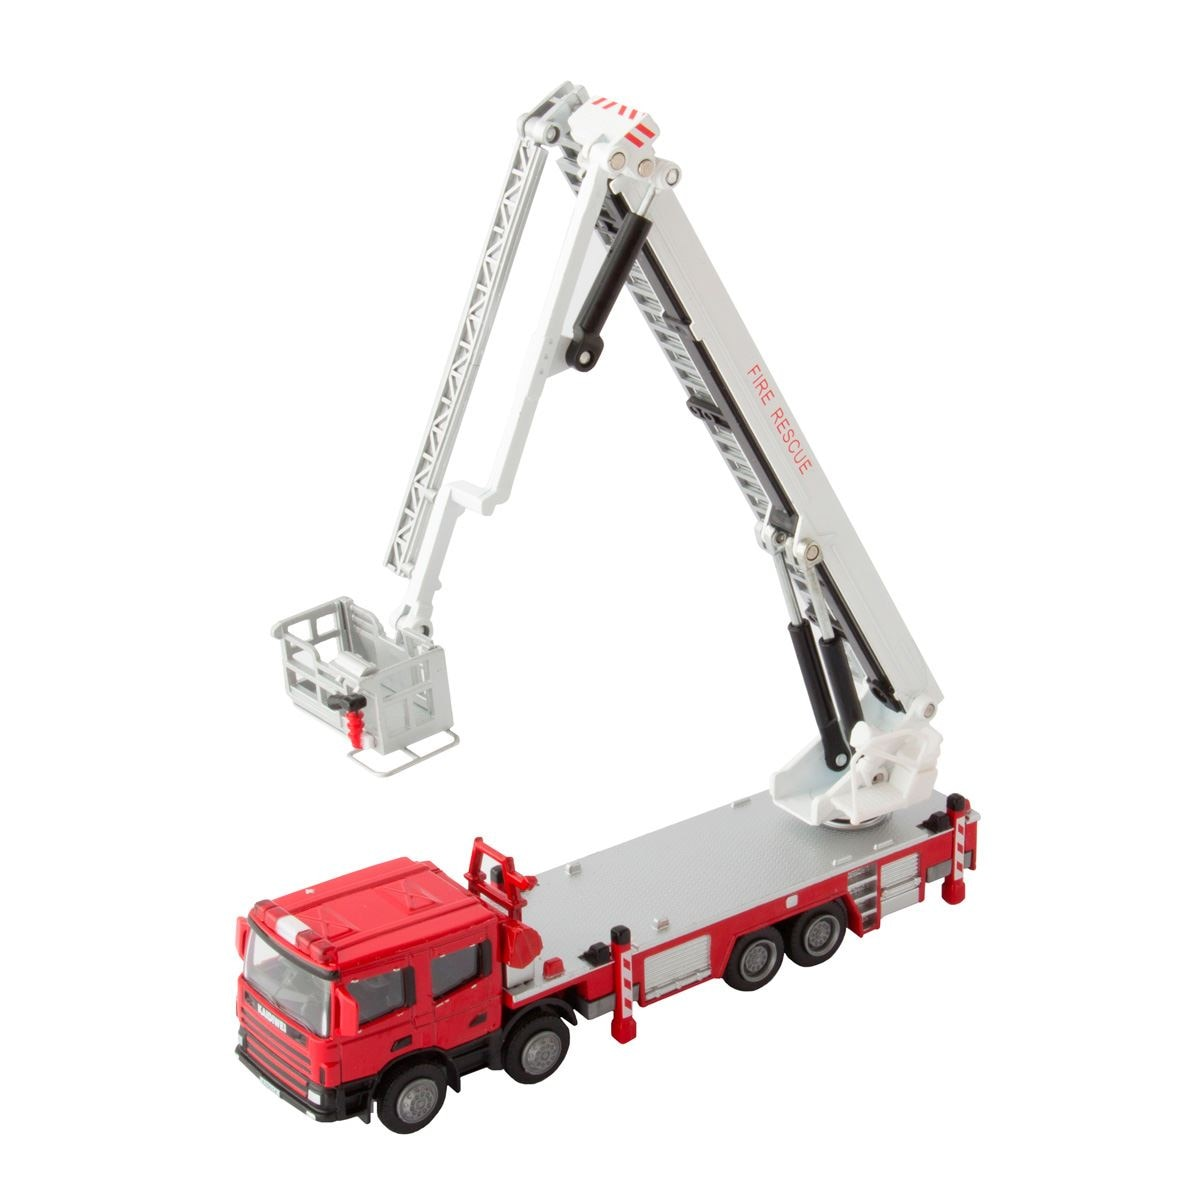 Ladder fire engine 1:50  - Sanborns